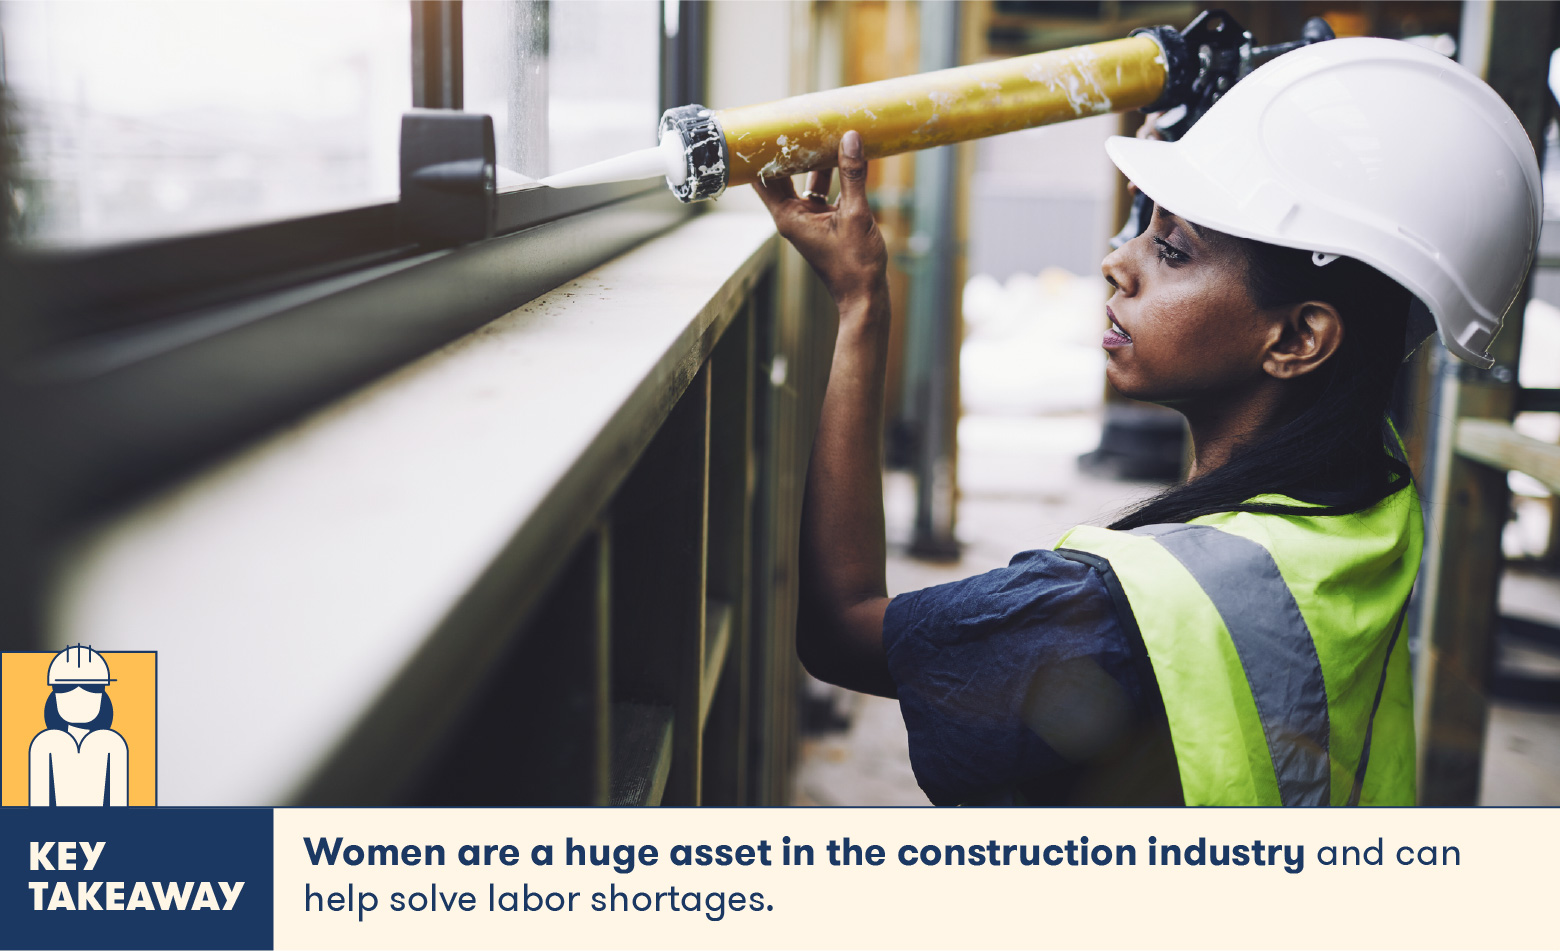 women are a huge asset in the construction industry